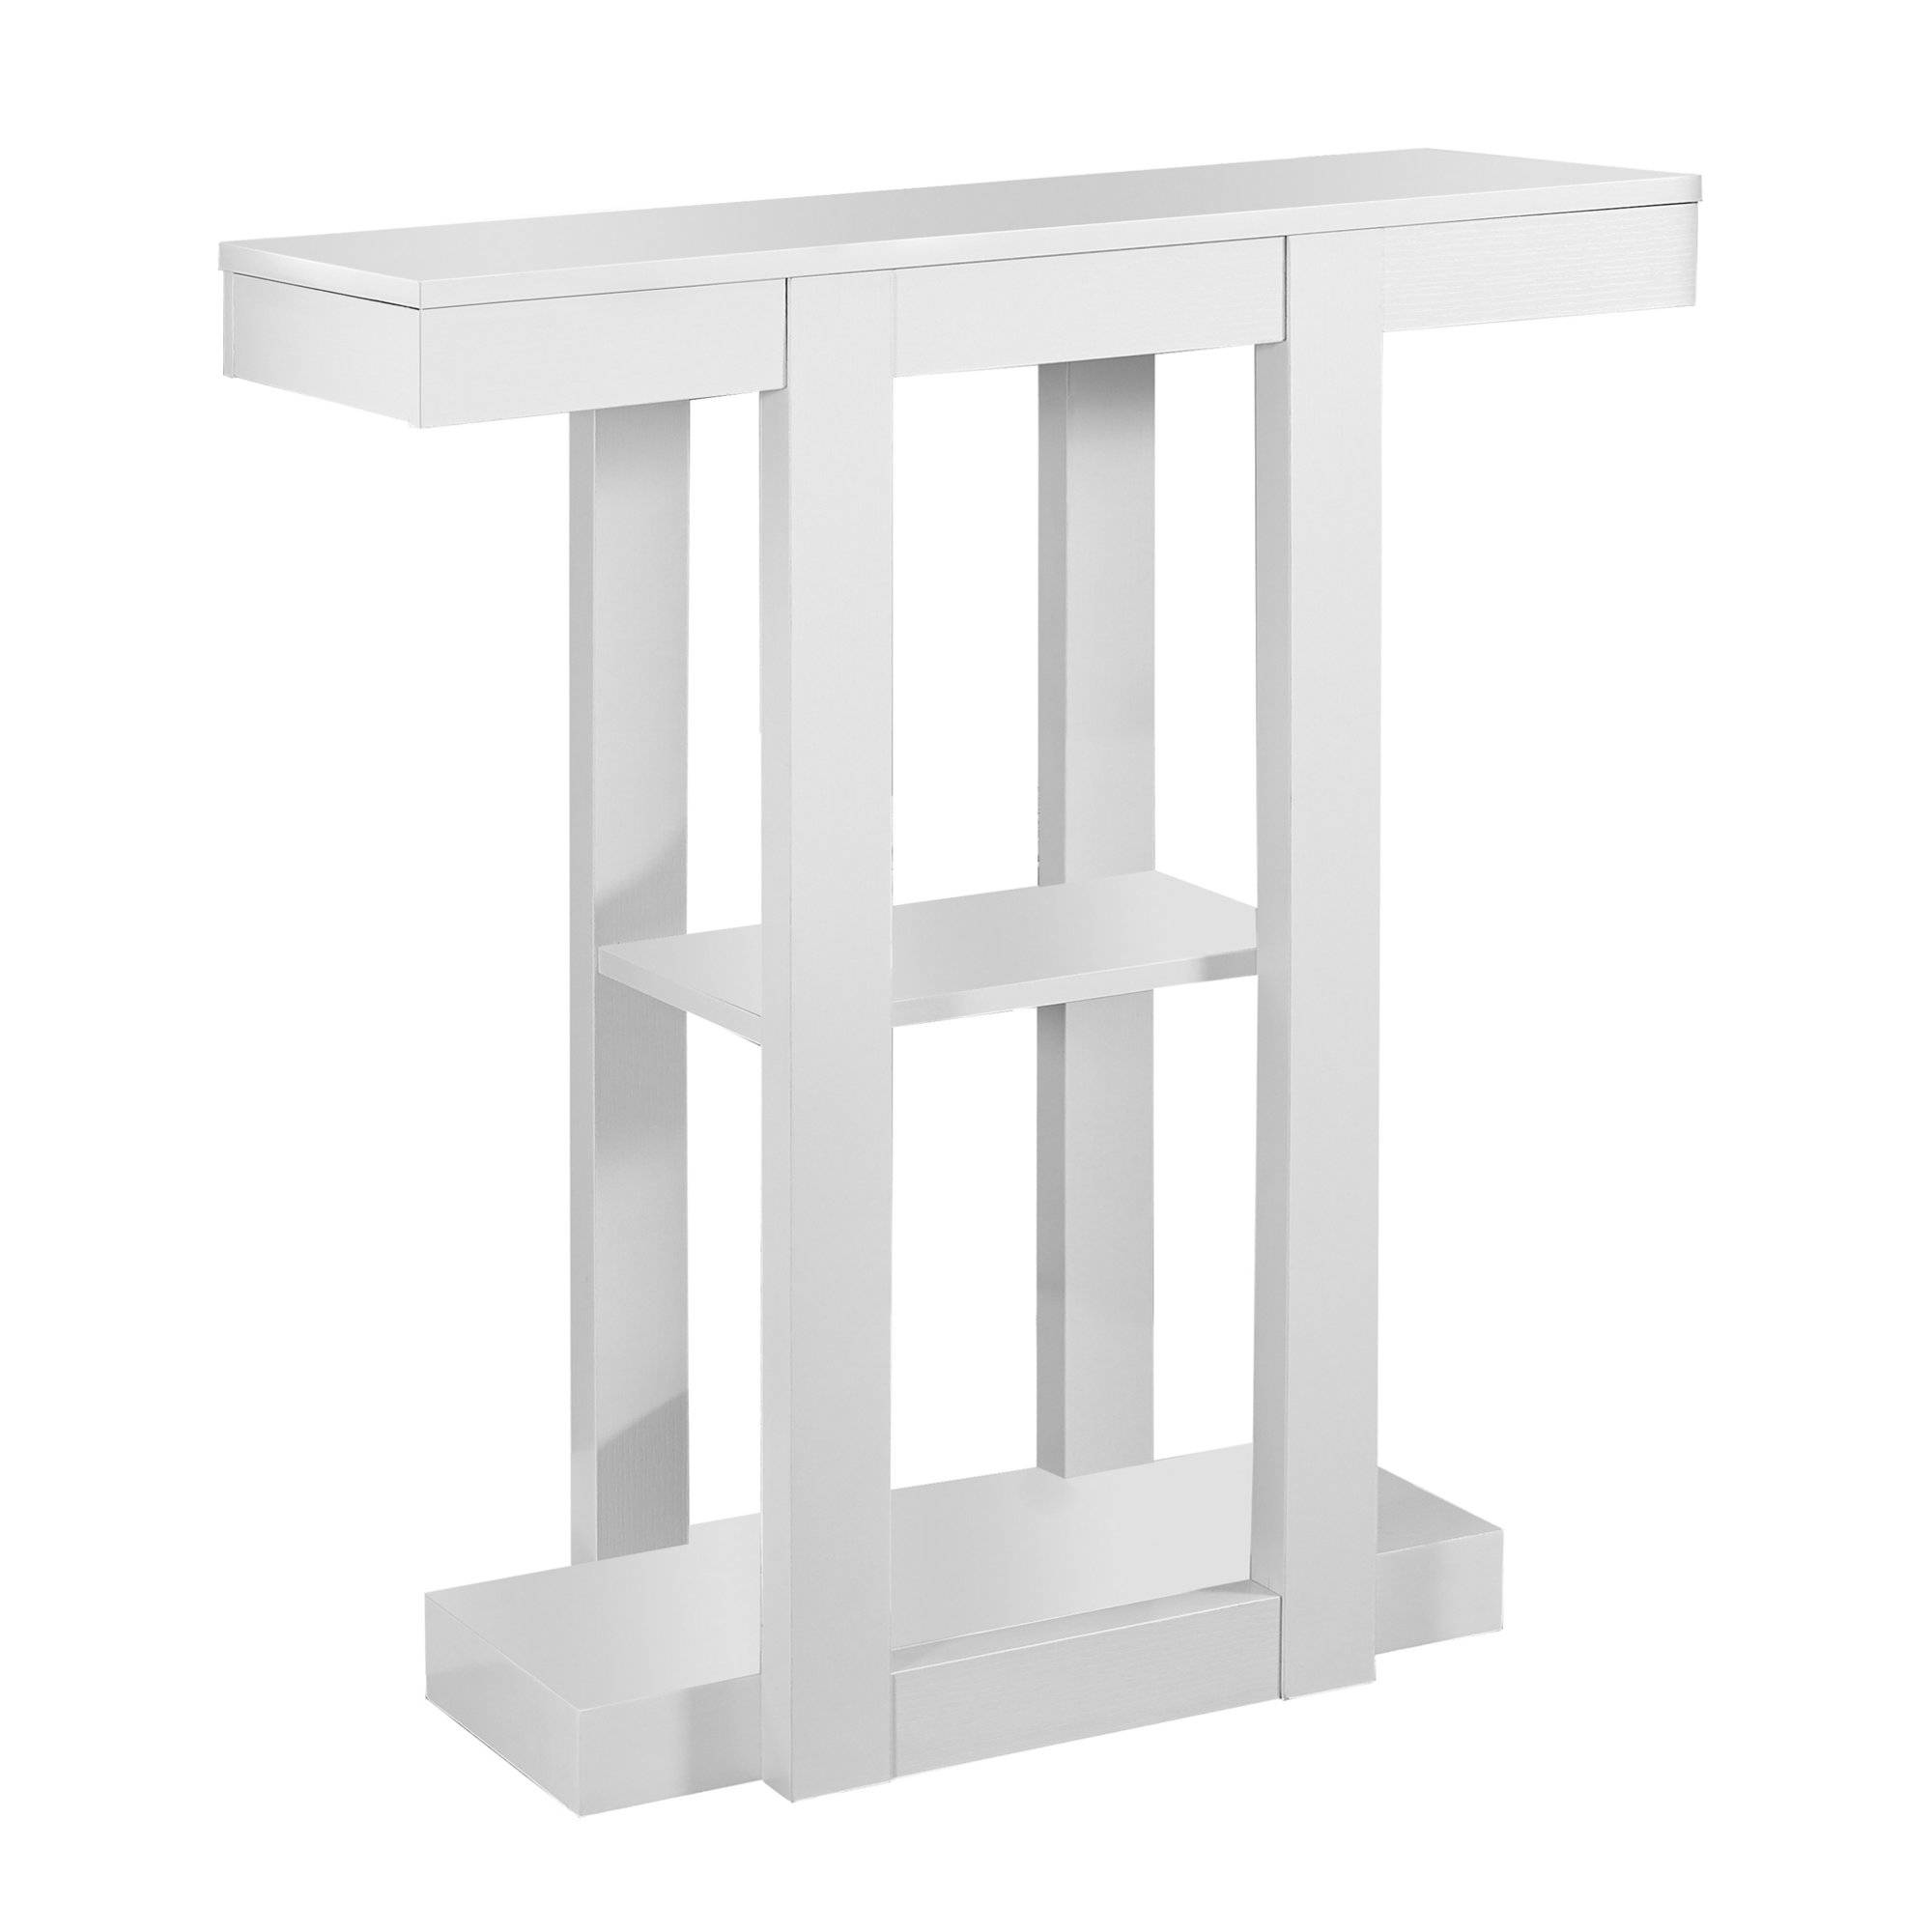 monarch specialties white storage hall console accent table the mnc with ice box cooler side small patio furniture childrens lamps seaside themed lamp shades slim unit ikea resin